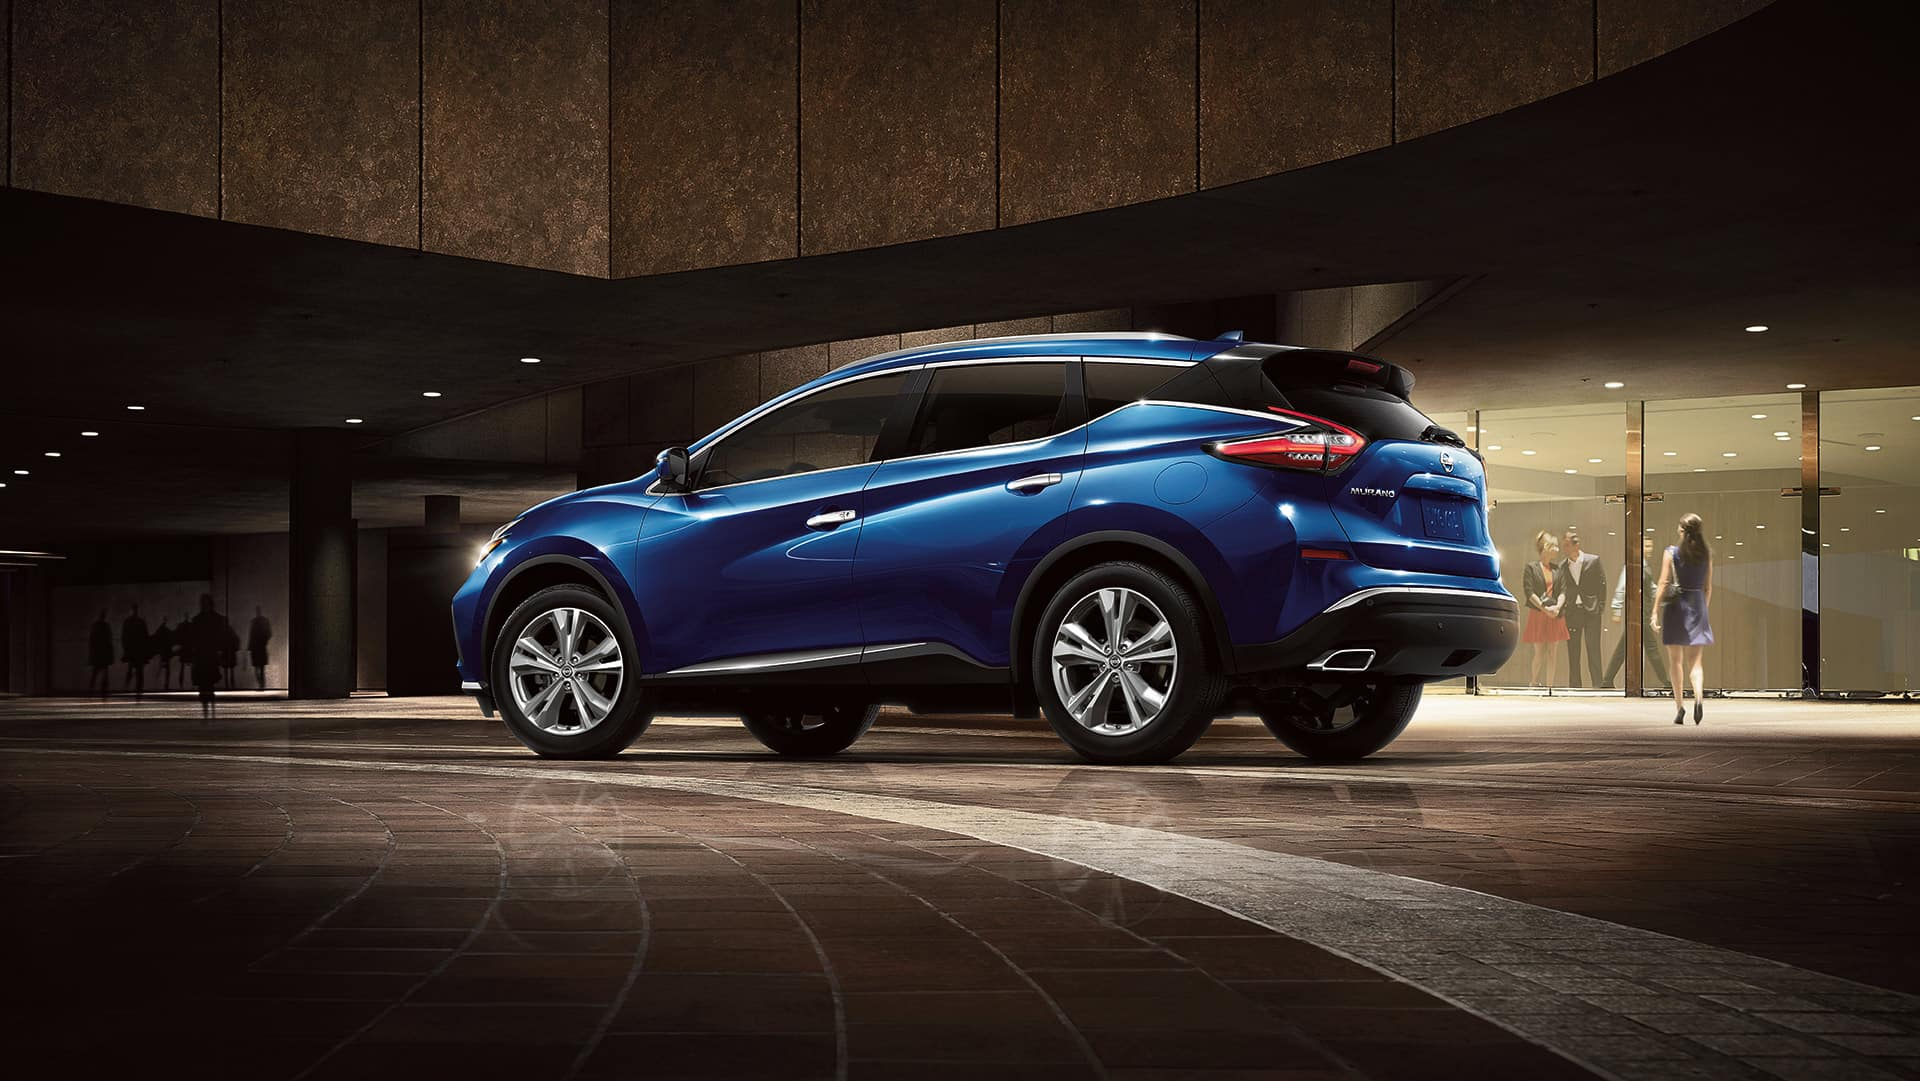 Nissan Boston is a Car Dealership near Boston MD | Blue MY20 Nissan Murano parked in front of dim lit luxury store front